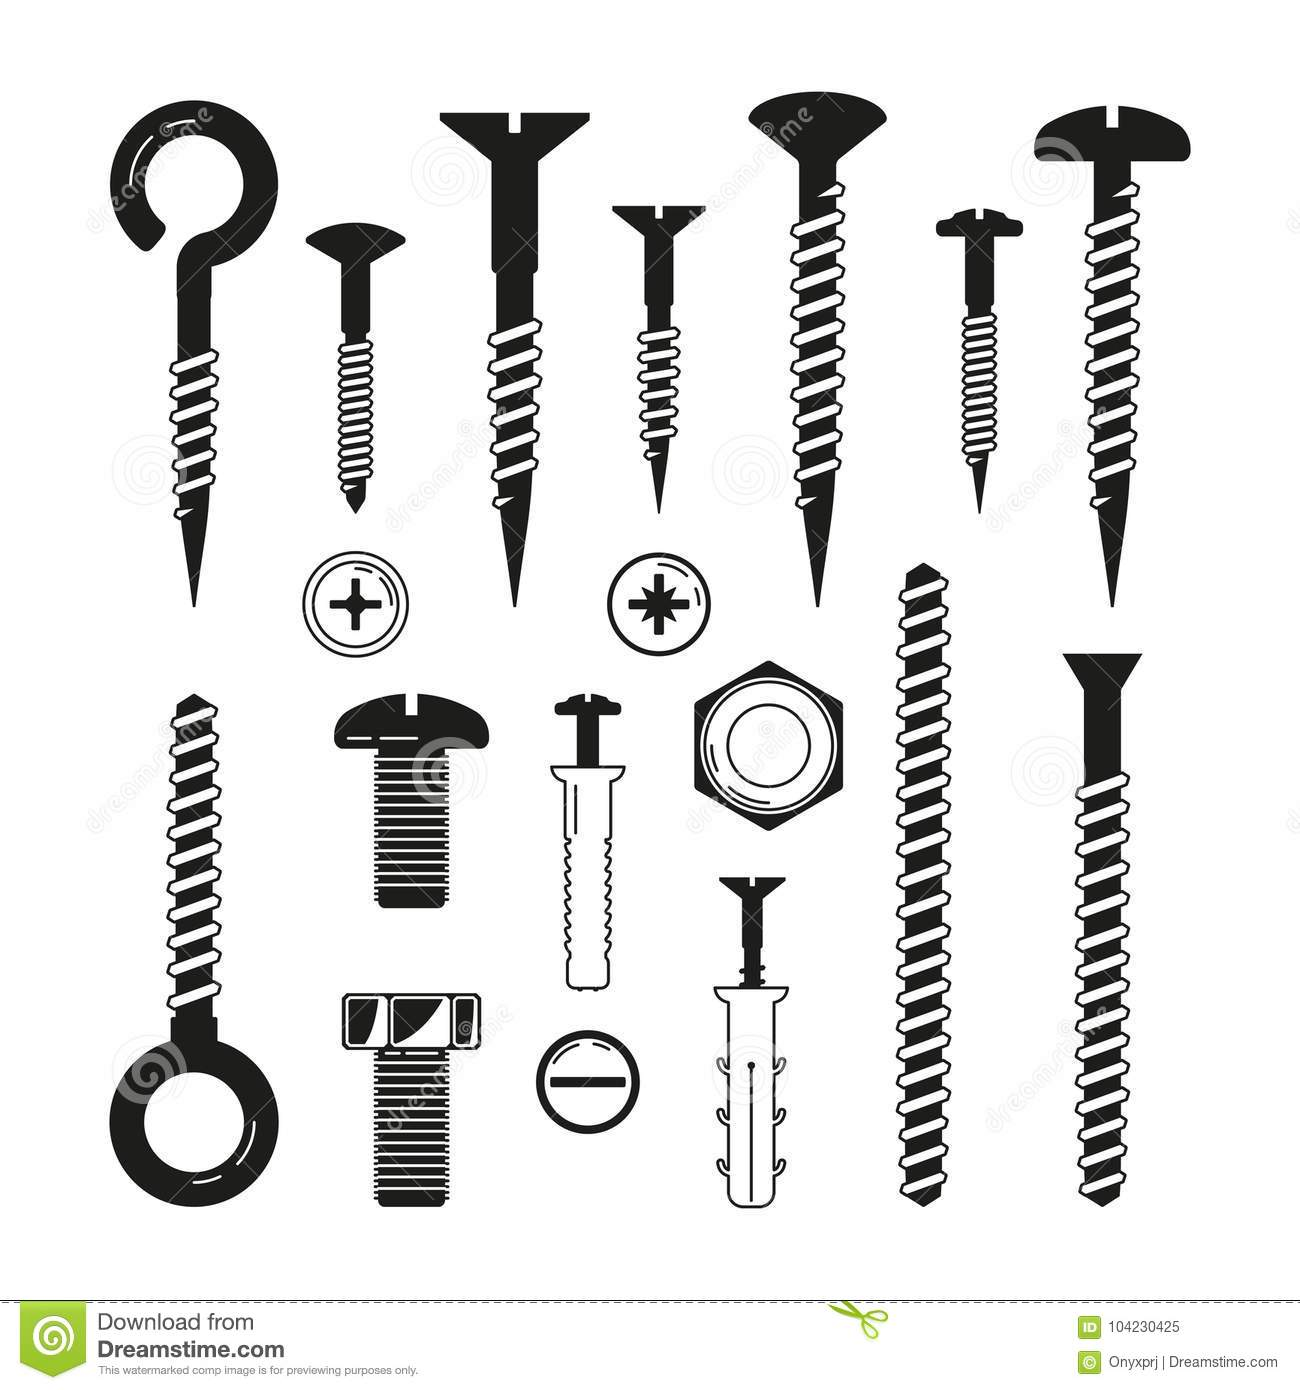 Monochrome illustrations of iron bolts, nuts, screws and others hardware tools